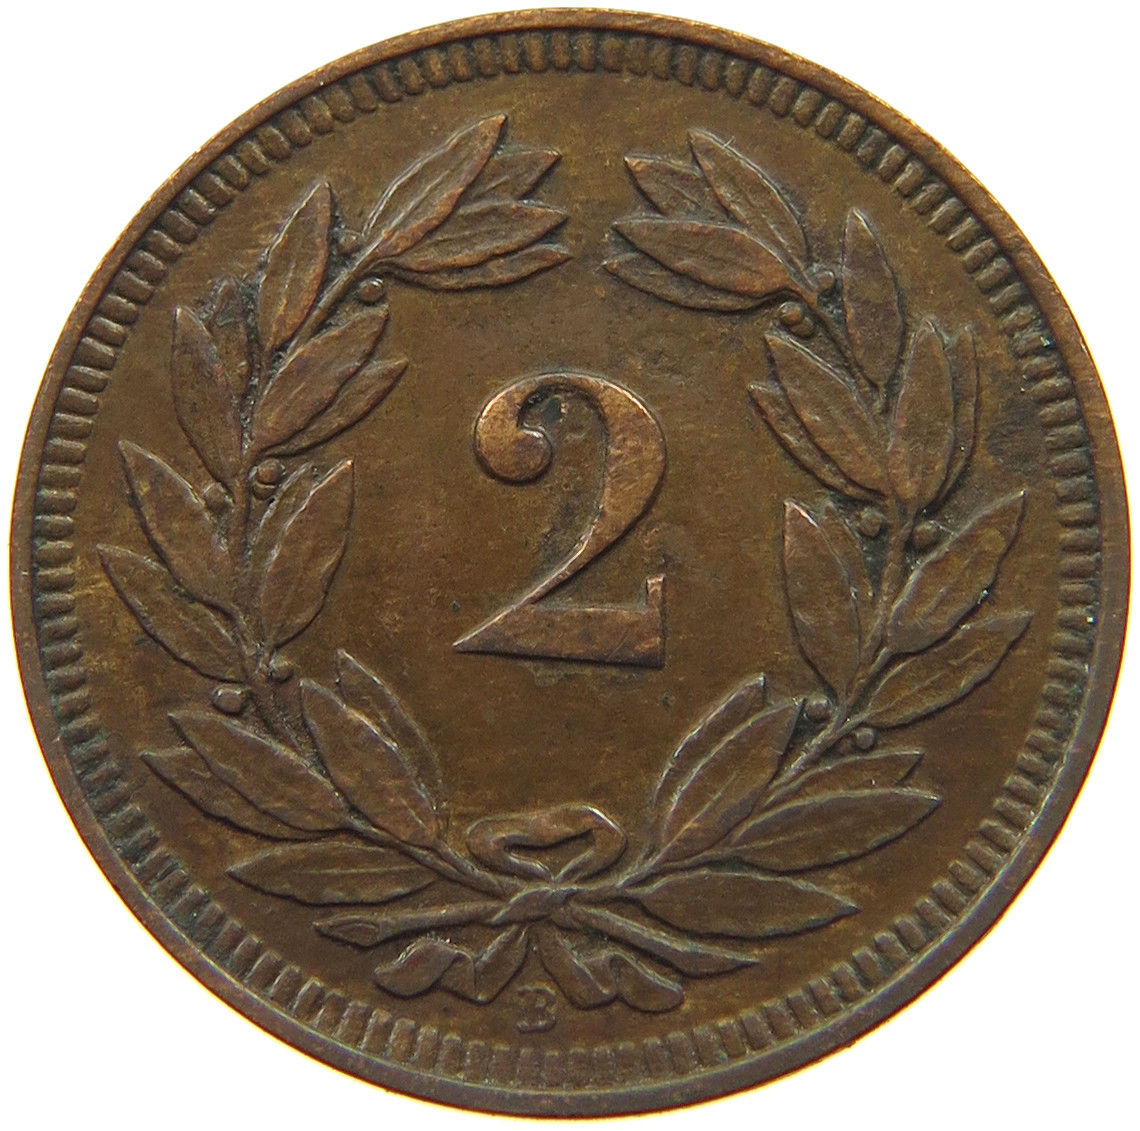 Two Centimes (Rappen) 1918: Photo Switzerland 2 Rappen 1918